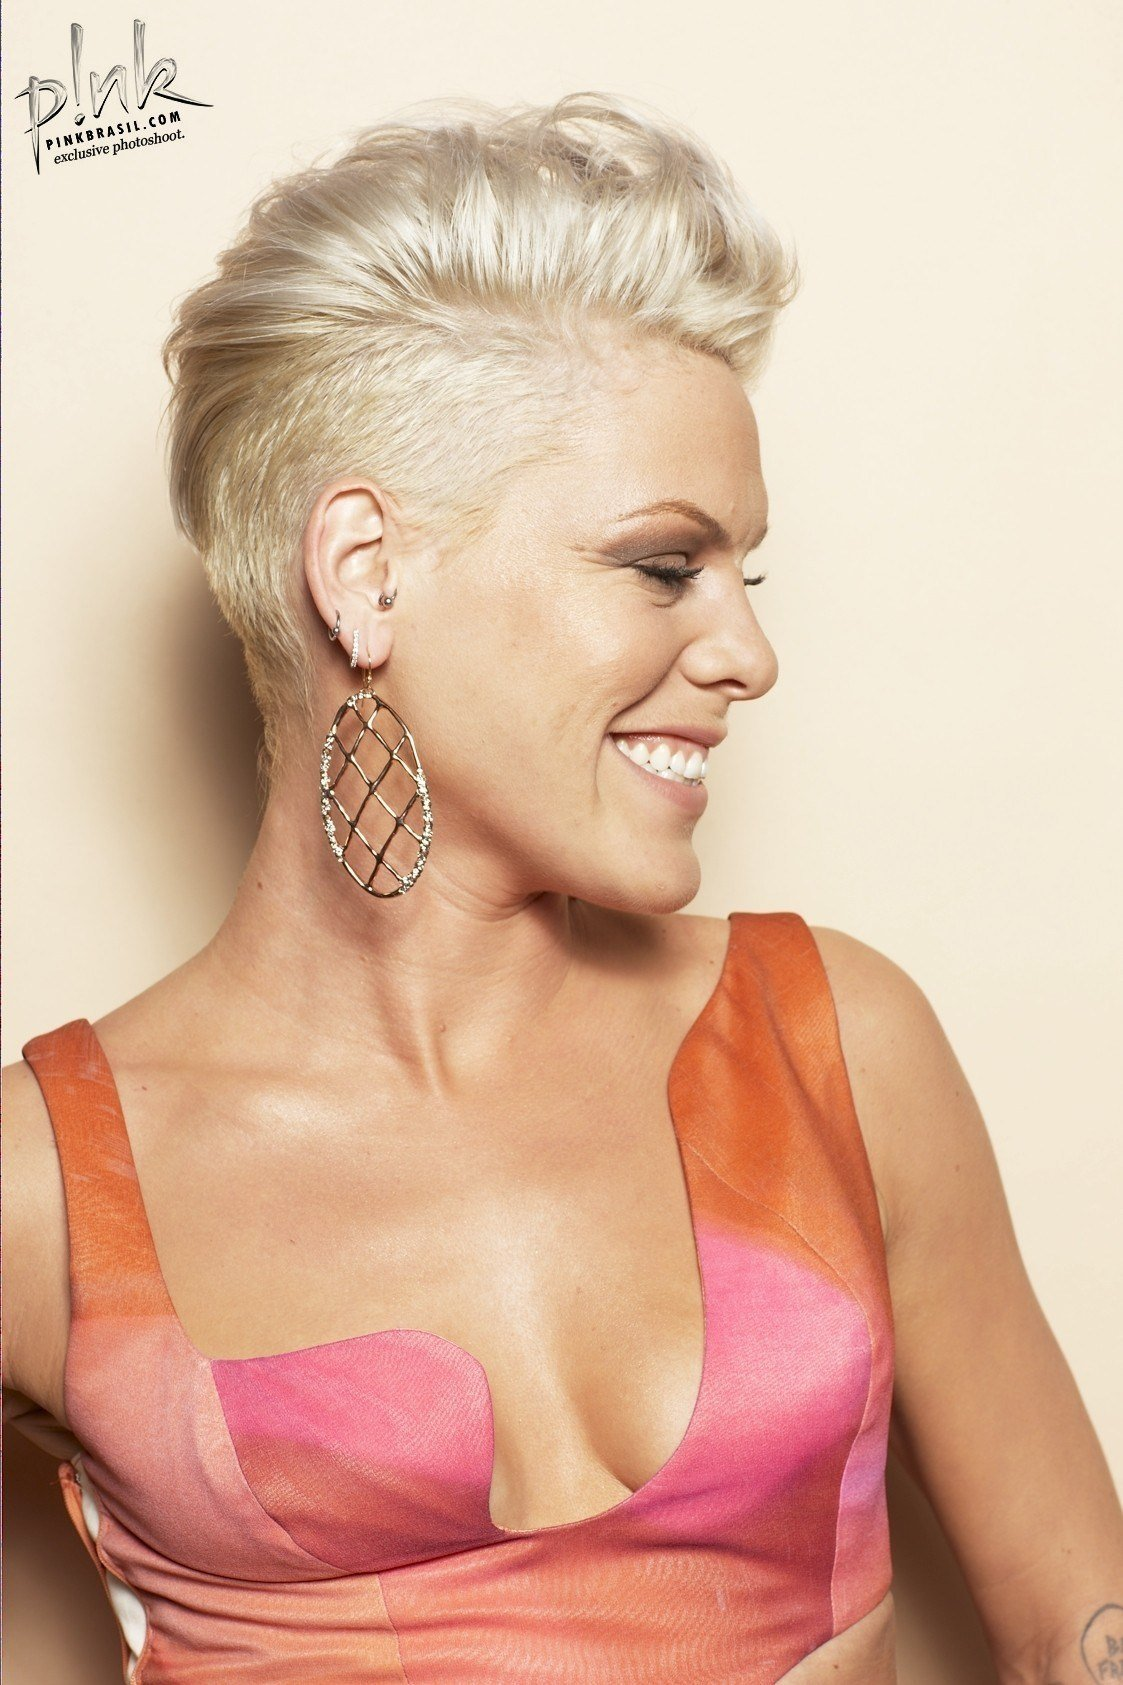 The Best P Nk Pink Photo 17651021 Fanpop Pictures